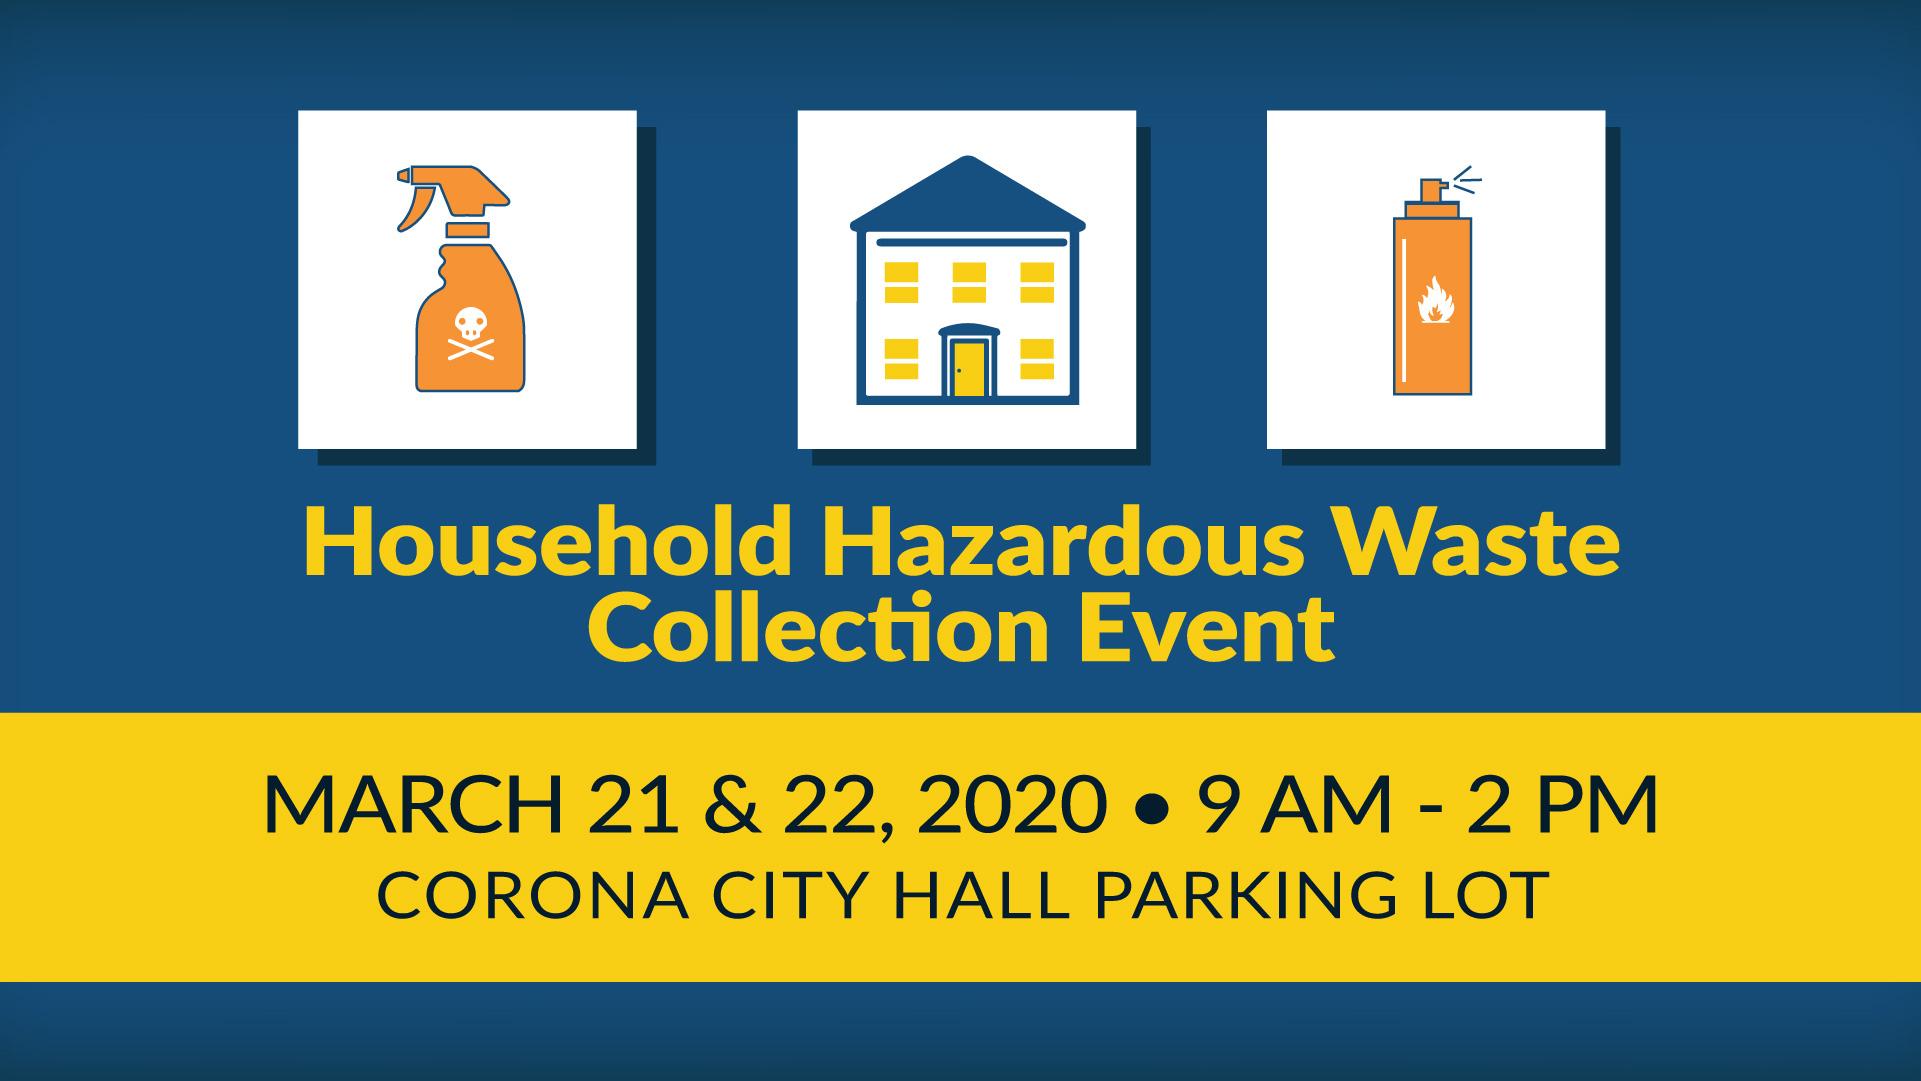 Household Hazardous Waste Collection Event March 2020